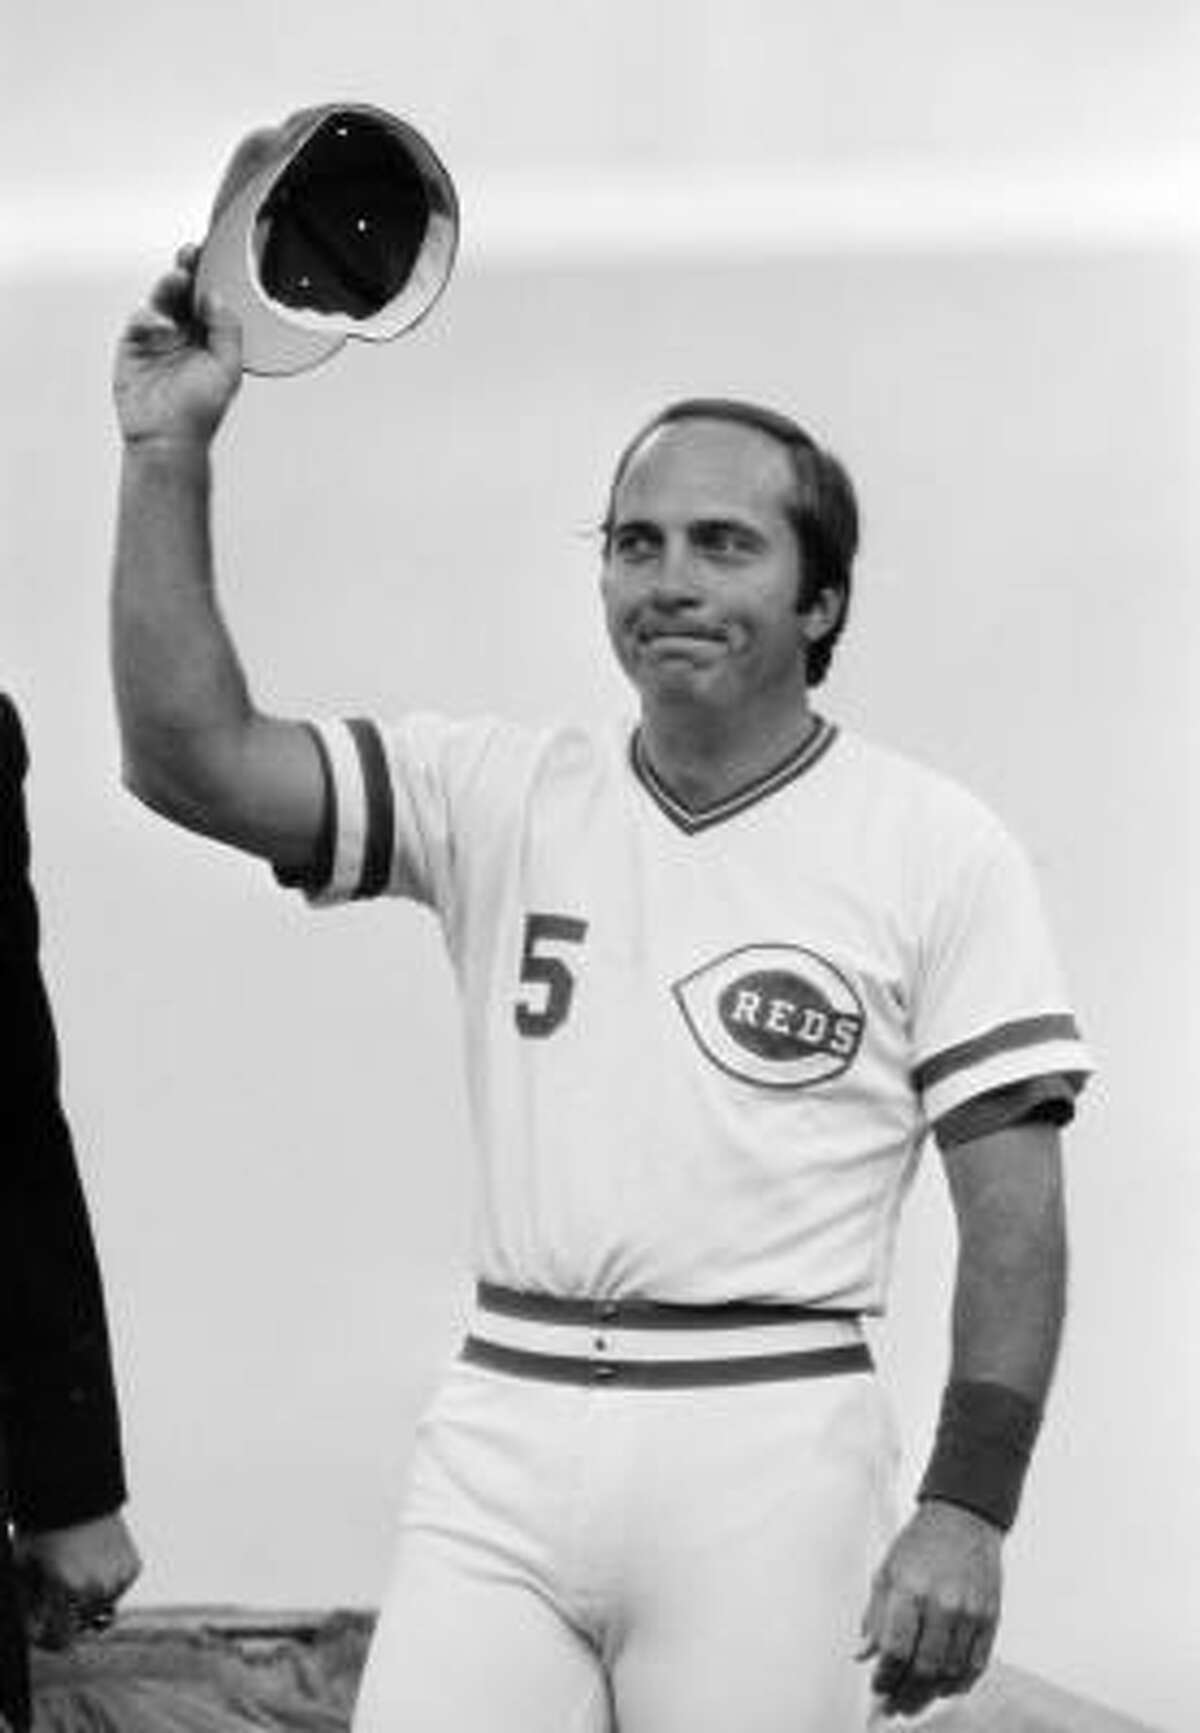 Johnny Bench One the greatest catchers to ever play the game, Bench a key member of Cincinnati's